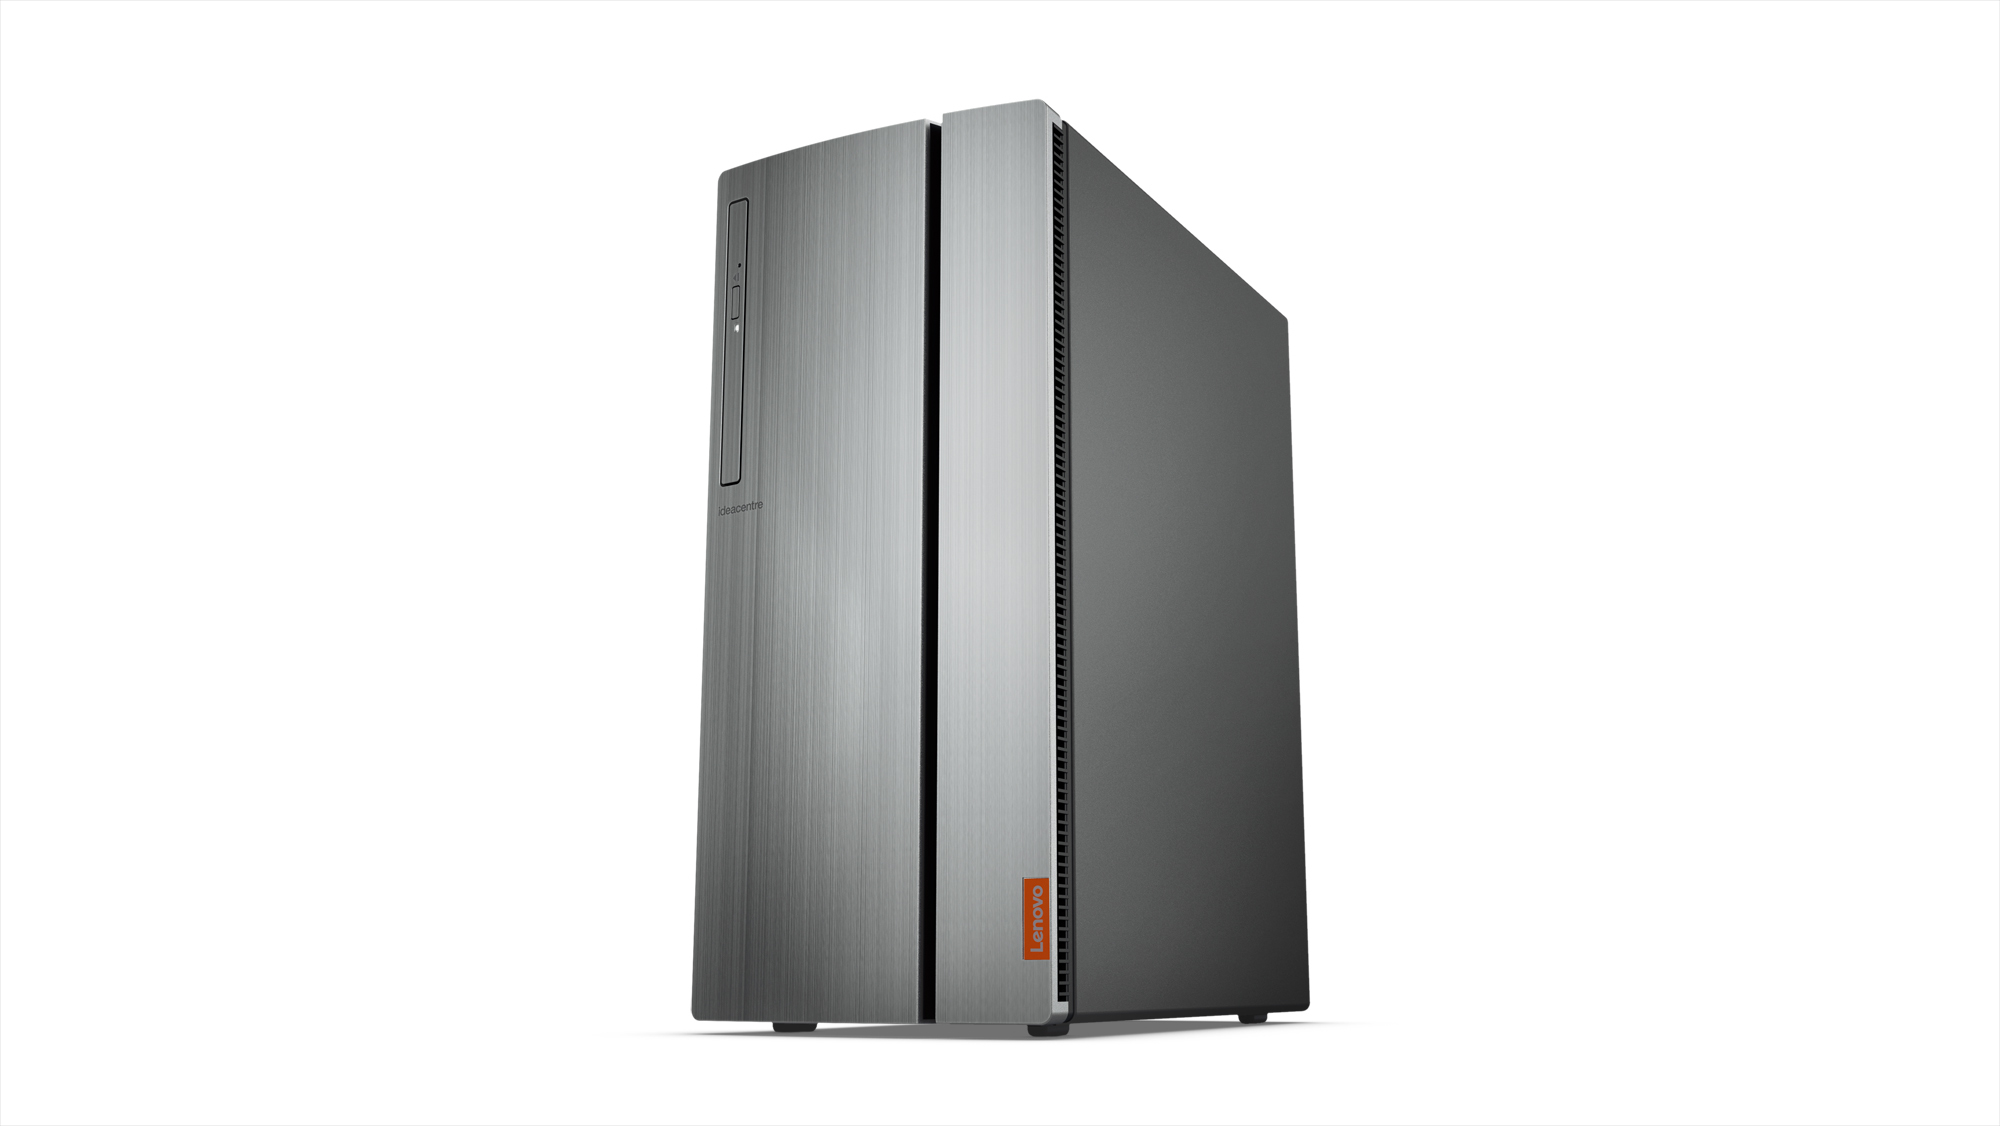 LENOVO 90H10020GE IDEACENTRE 720 3.2GHZ 1400 TOWER BLACK, SILVER PC